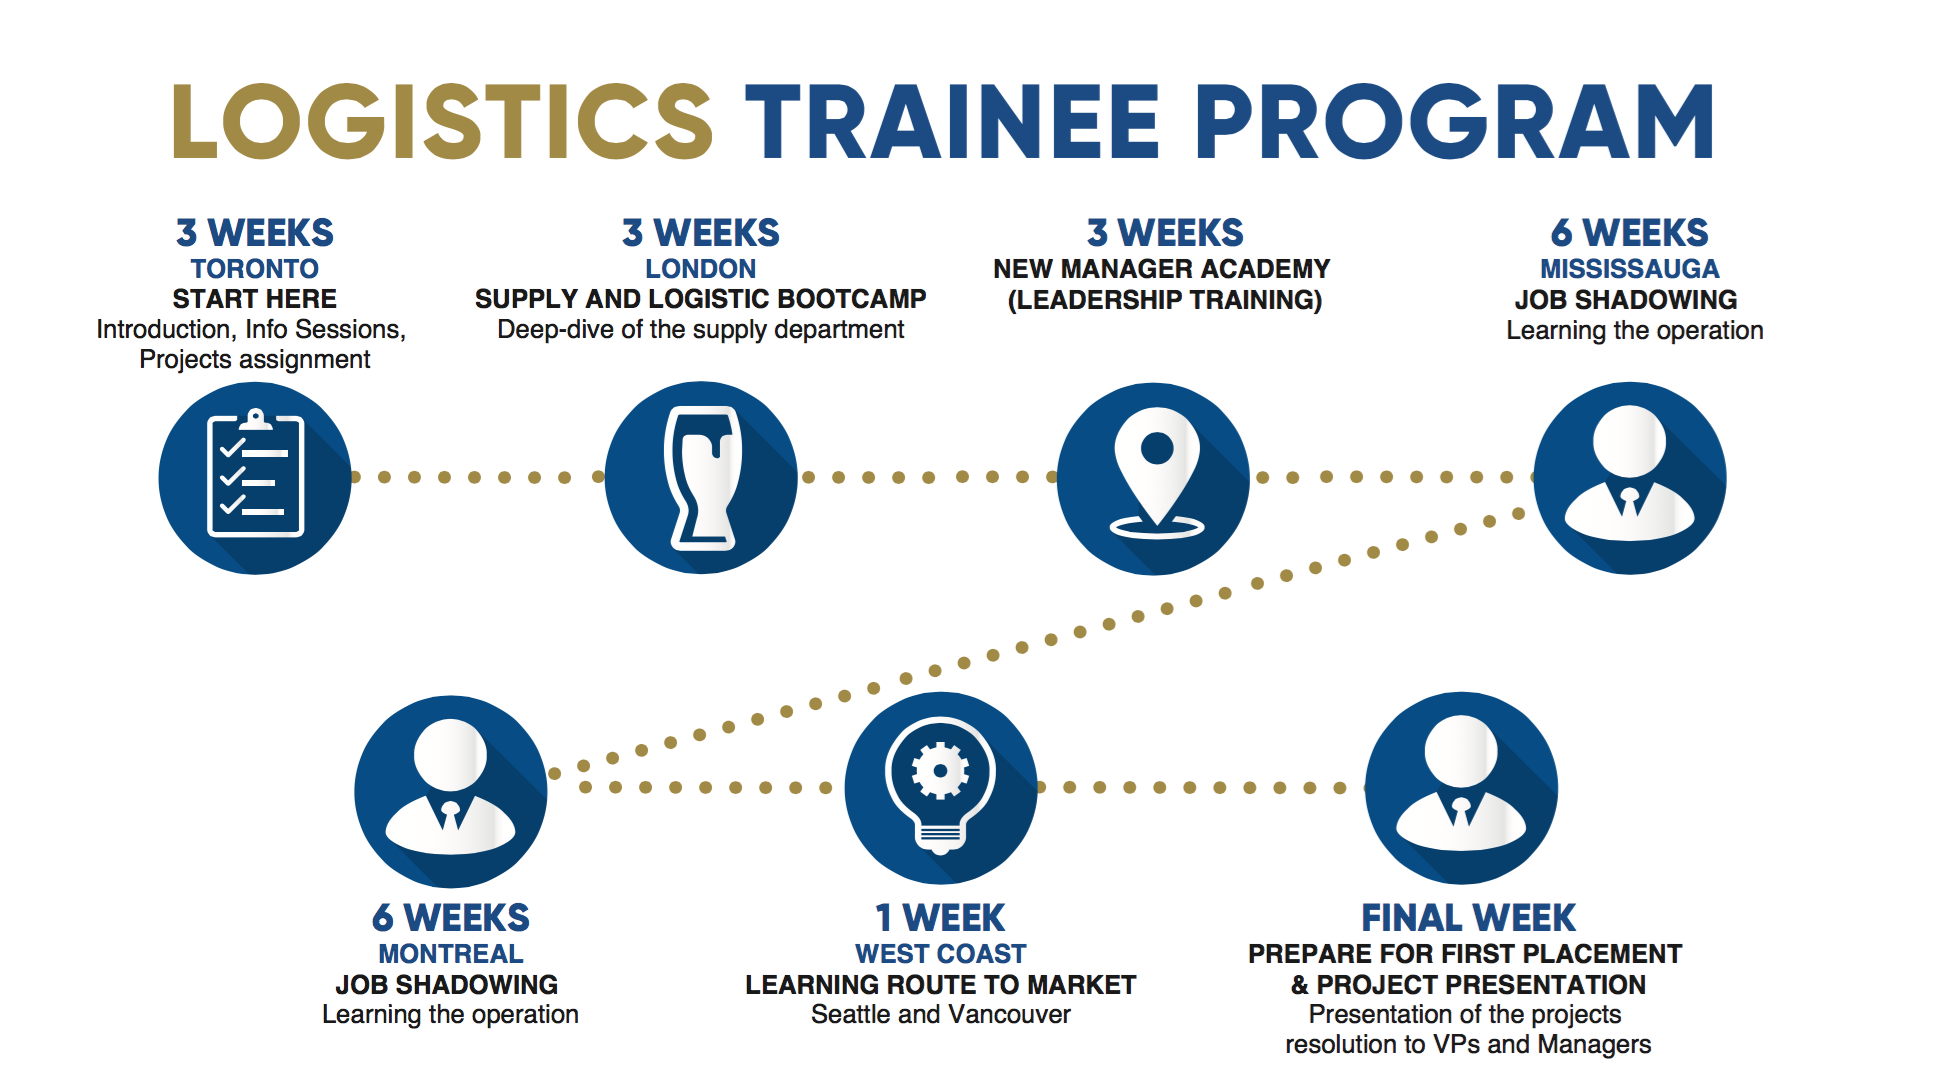 Logistics Trainee Program